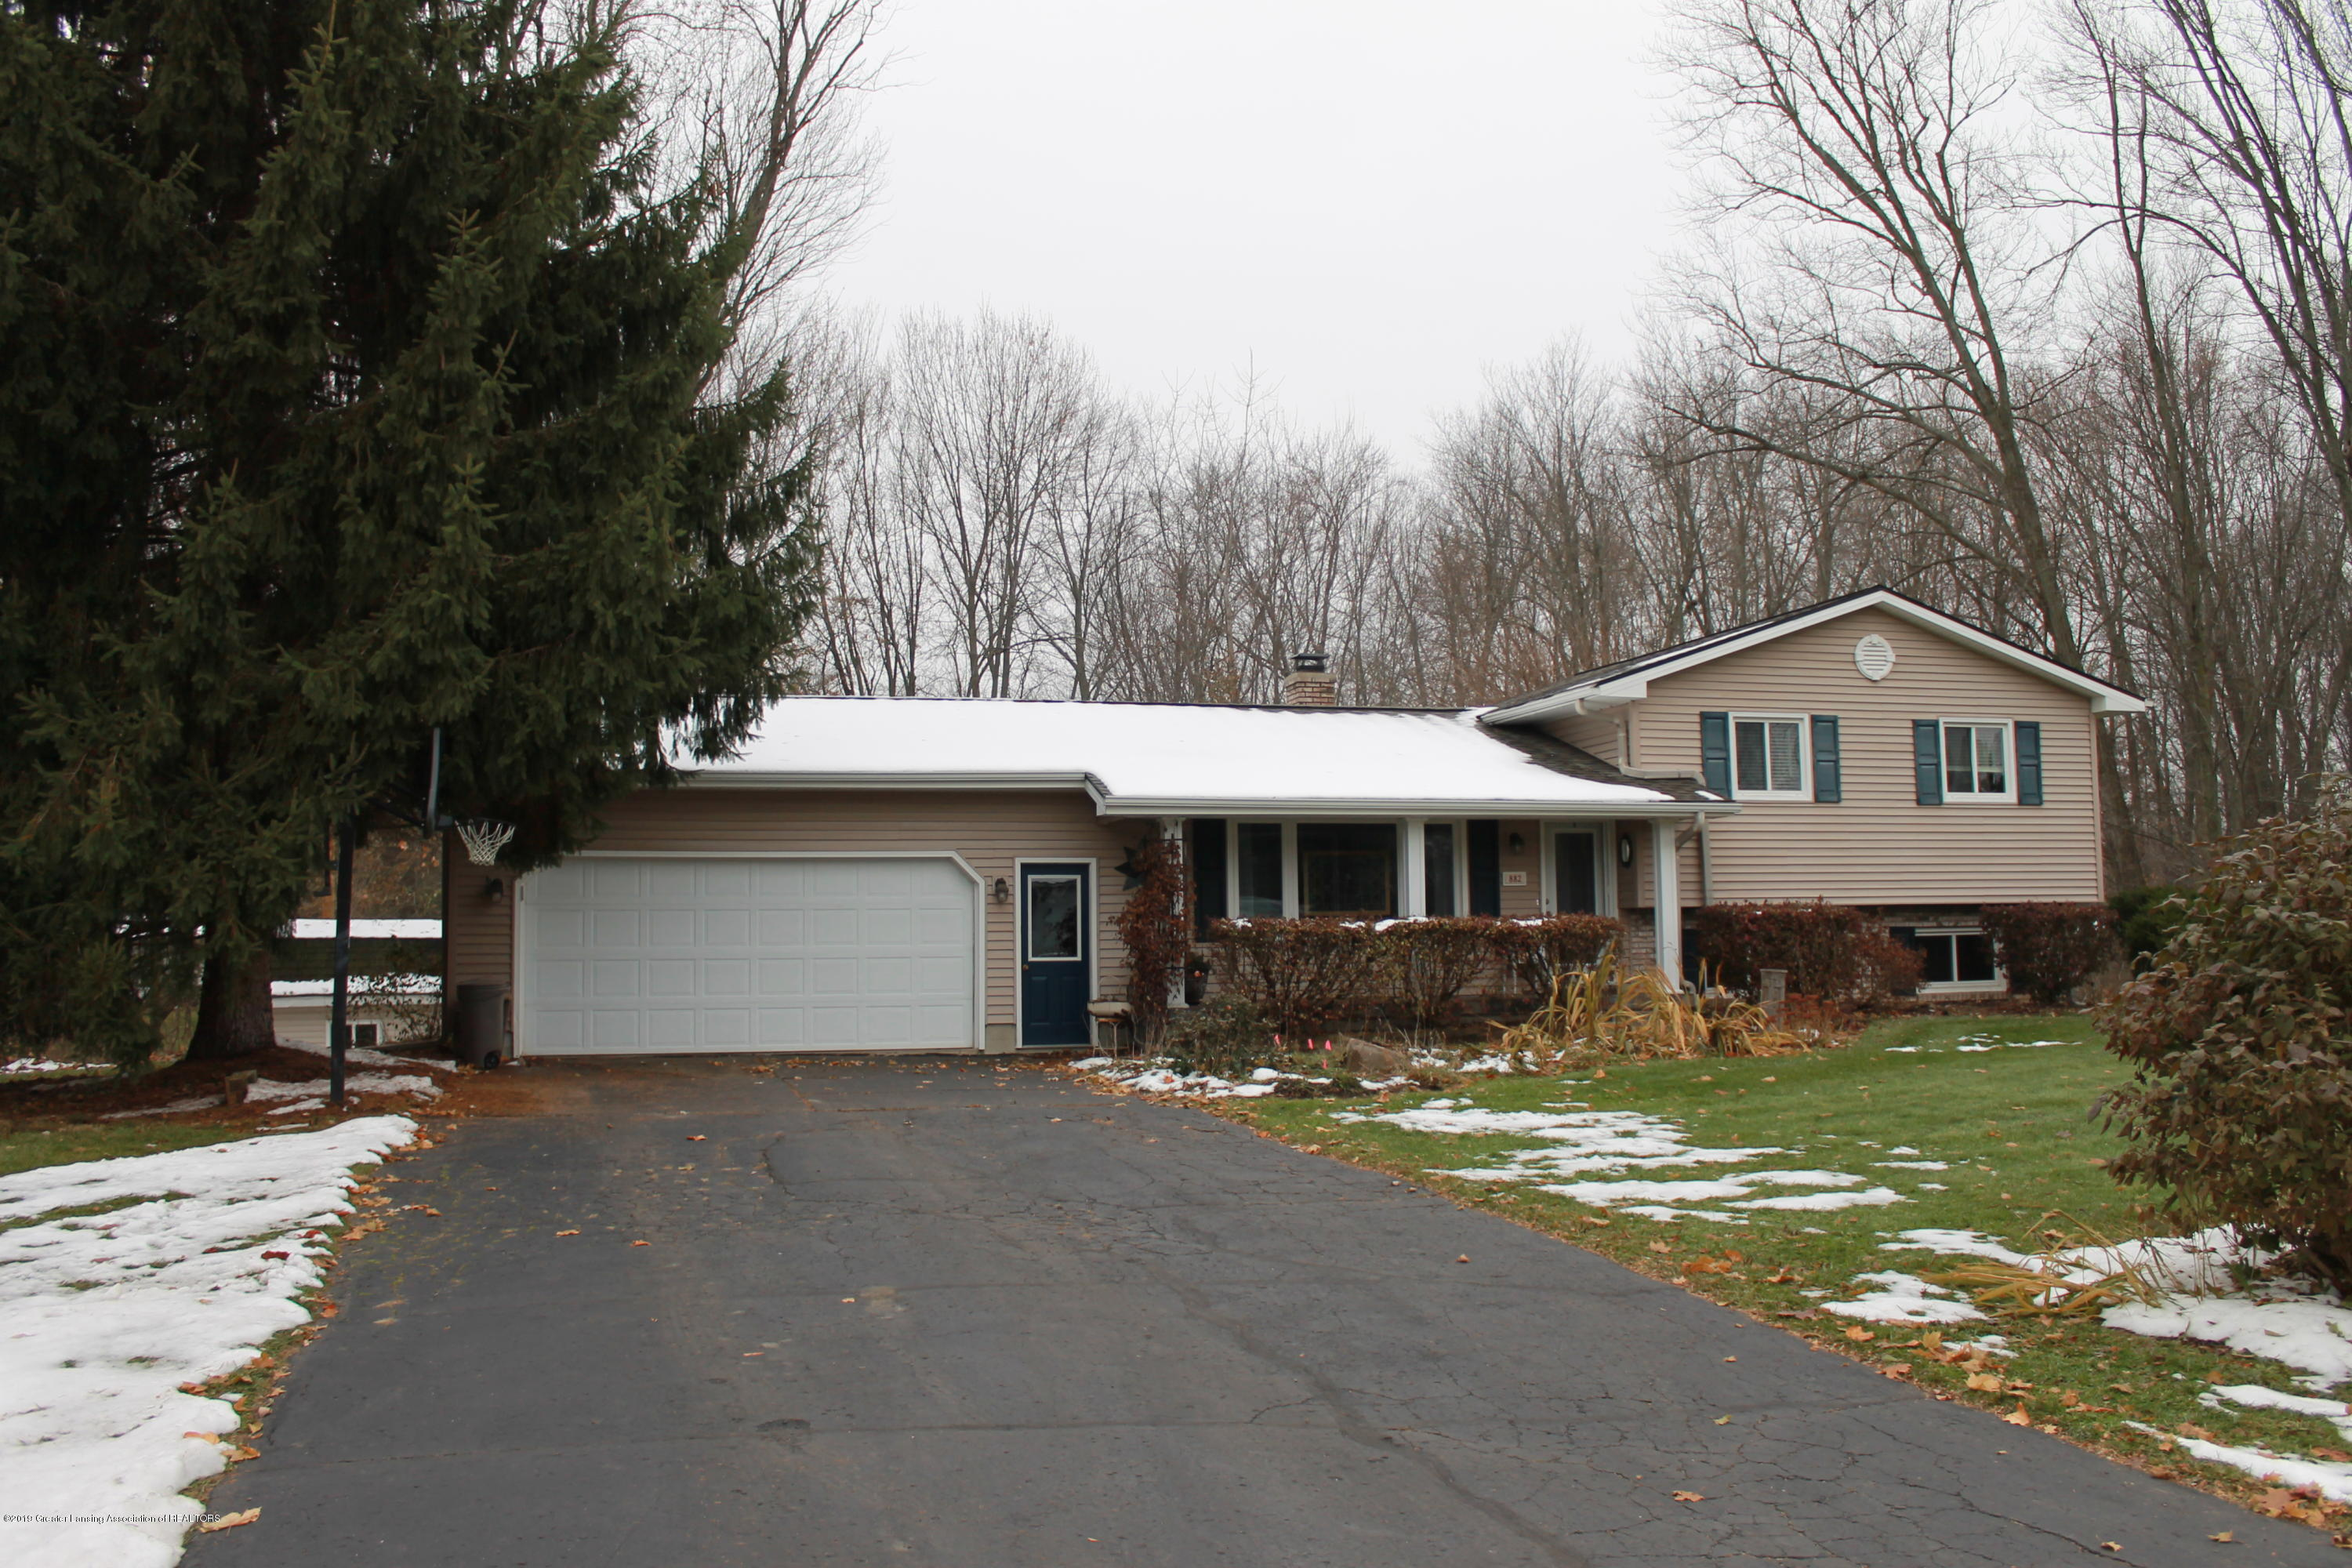 882 Shawano Dr - Updated Fall Photo 11-20-19 - 43